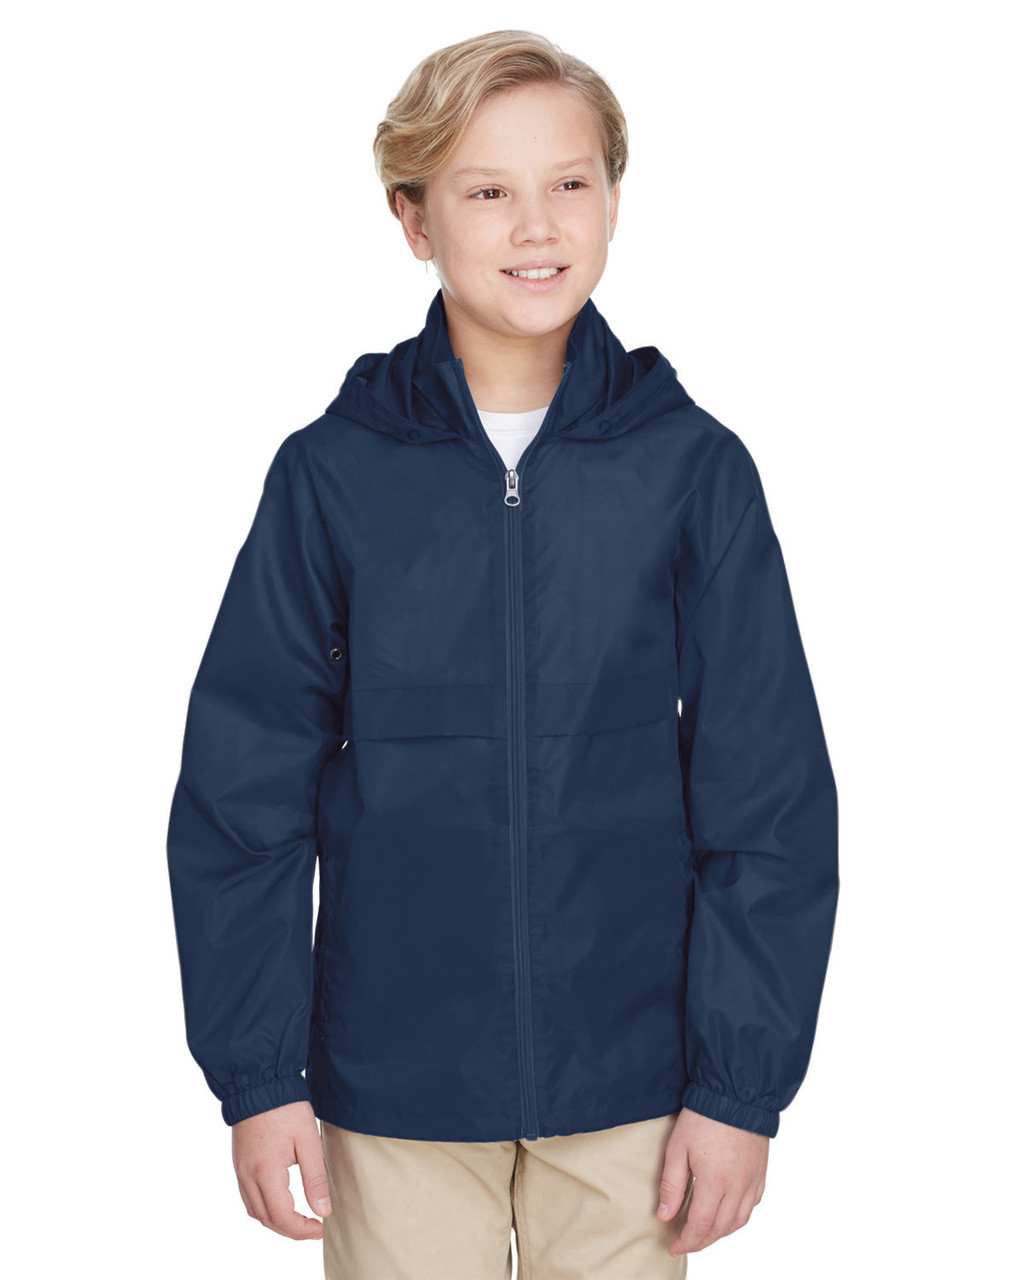 Sport Dark Navy - TT73Y Team 365 Youth Zone Protect Lightweight Jacket  | BlankClothing.ca